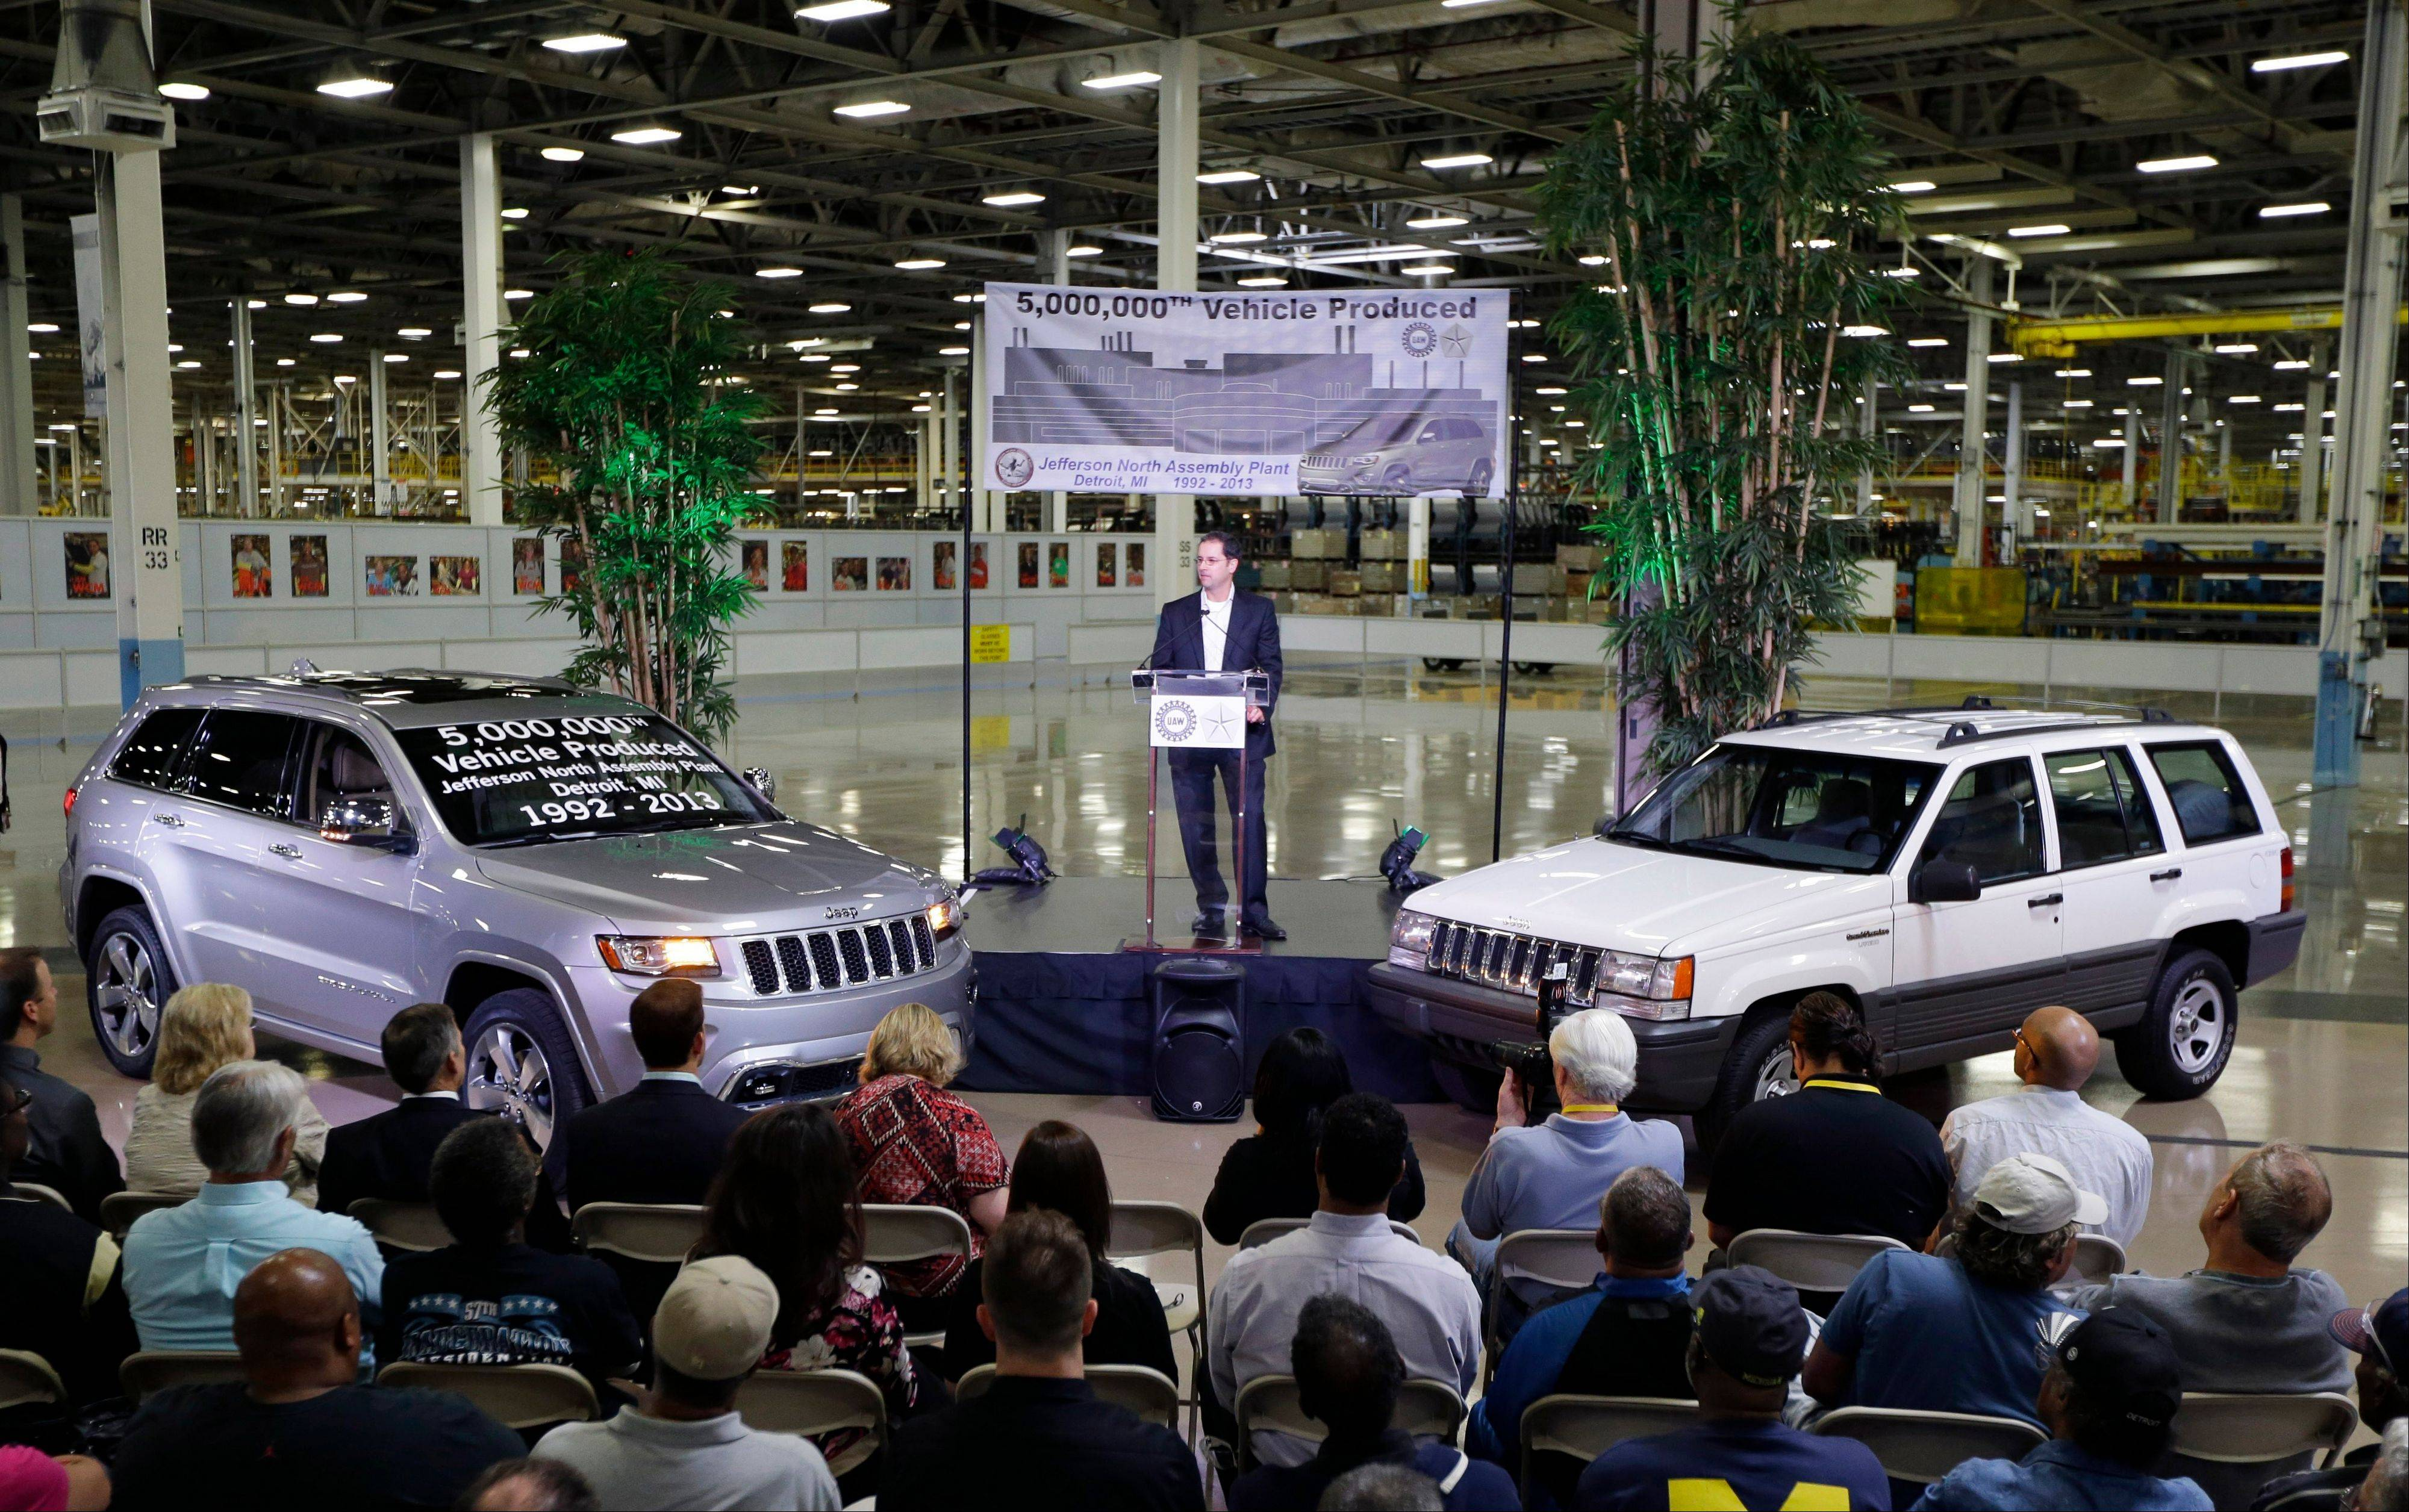 Scott Garberding, senior vice president of manufacturing for Chrysler Group LLC stands between a 1992 Grand Cherokee, right, and the automaker's 5,000,000th vehicle produced at the Jefferson North Assembly Plant, in Detroit. U.S. factories increased output in August by the most in eight months, helped by a robust month at auto plants. The gains are a hopeful sign that manufacturing could help boost economic growth in the second half of the year.